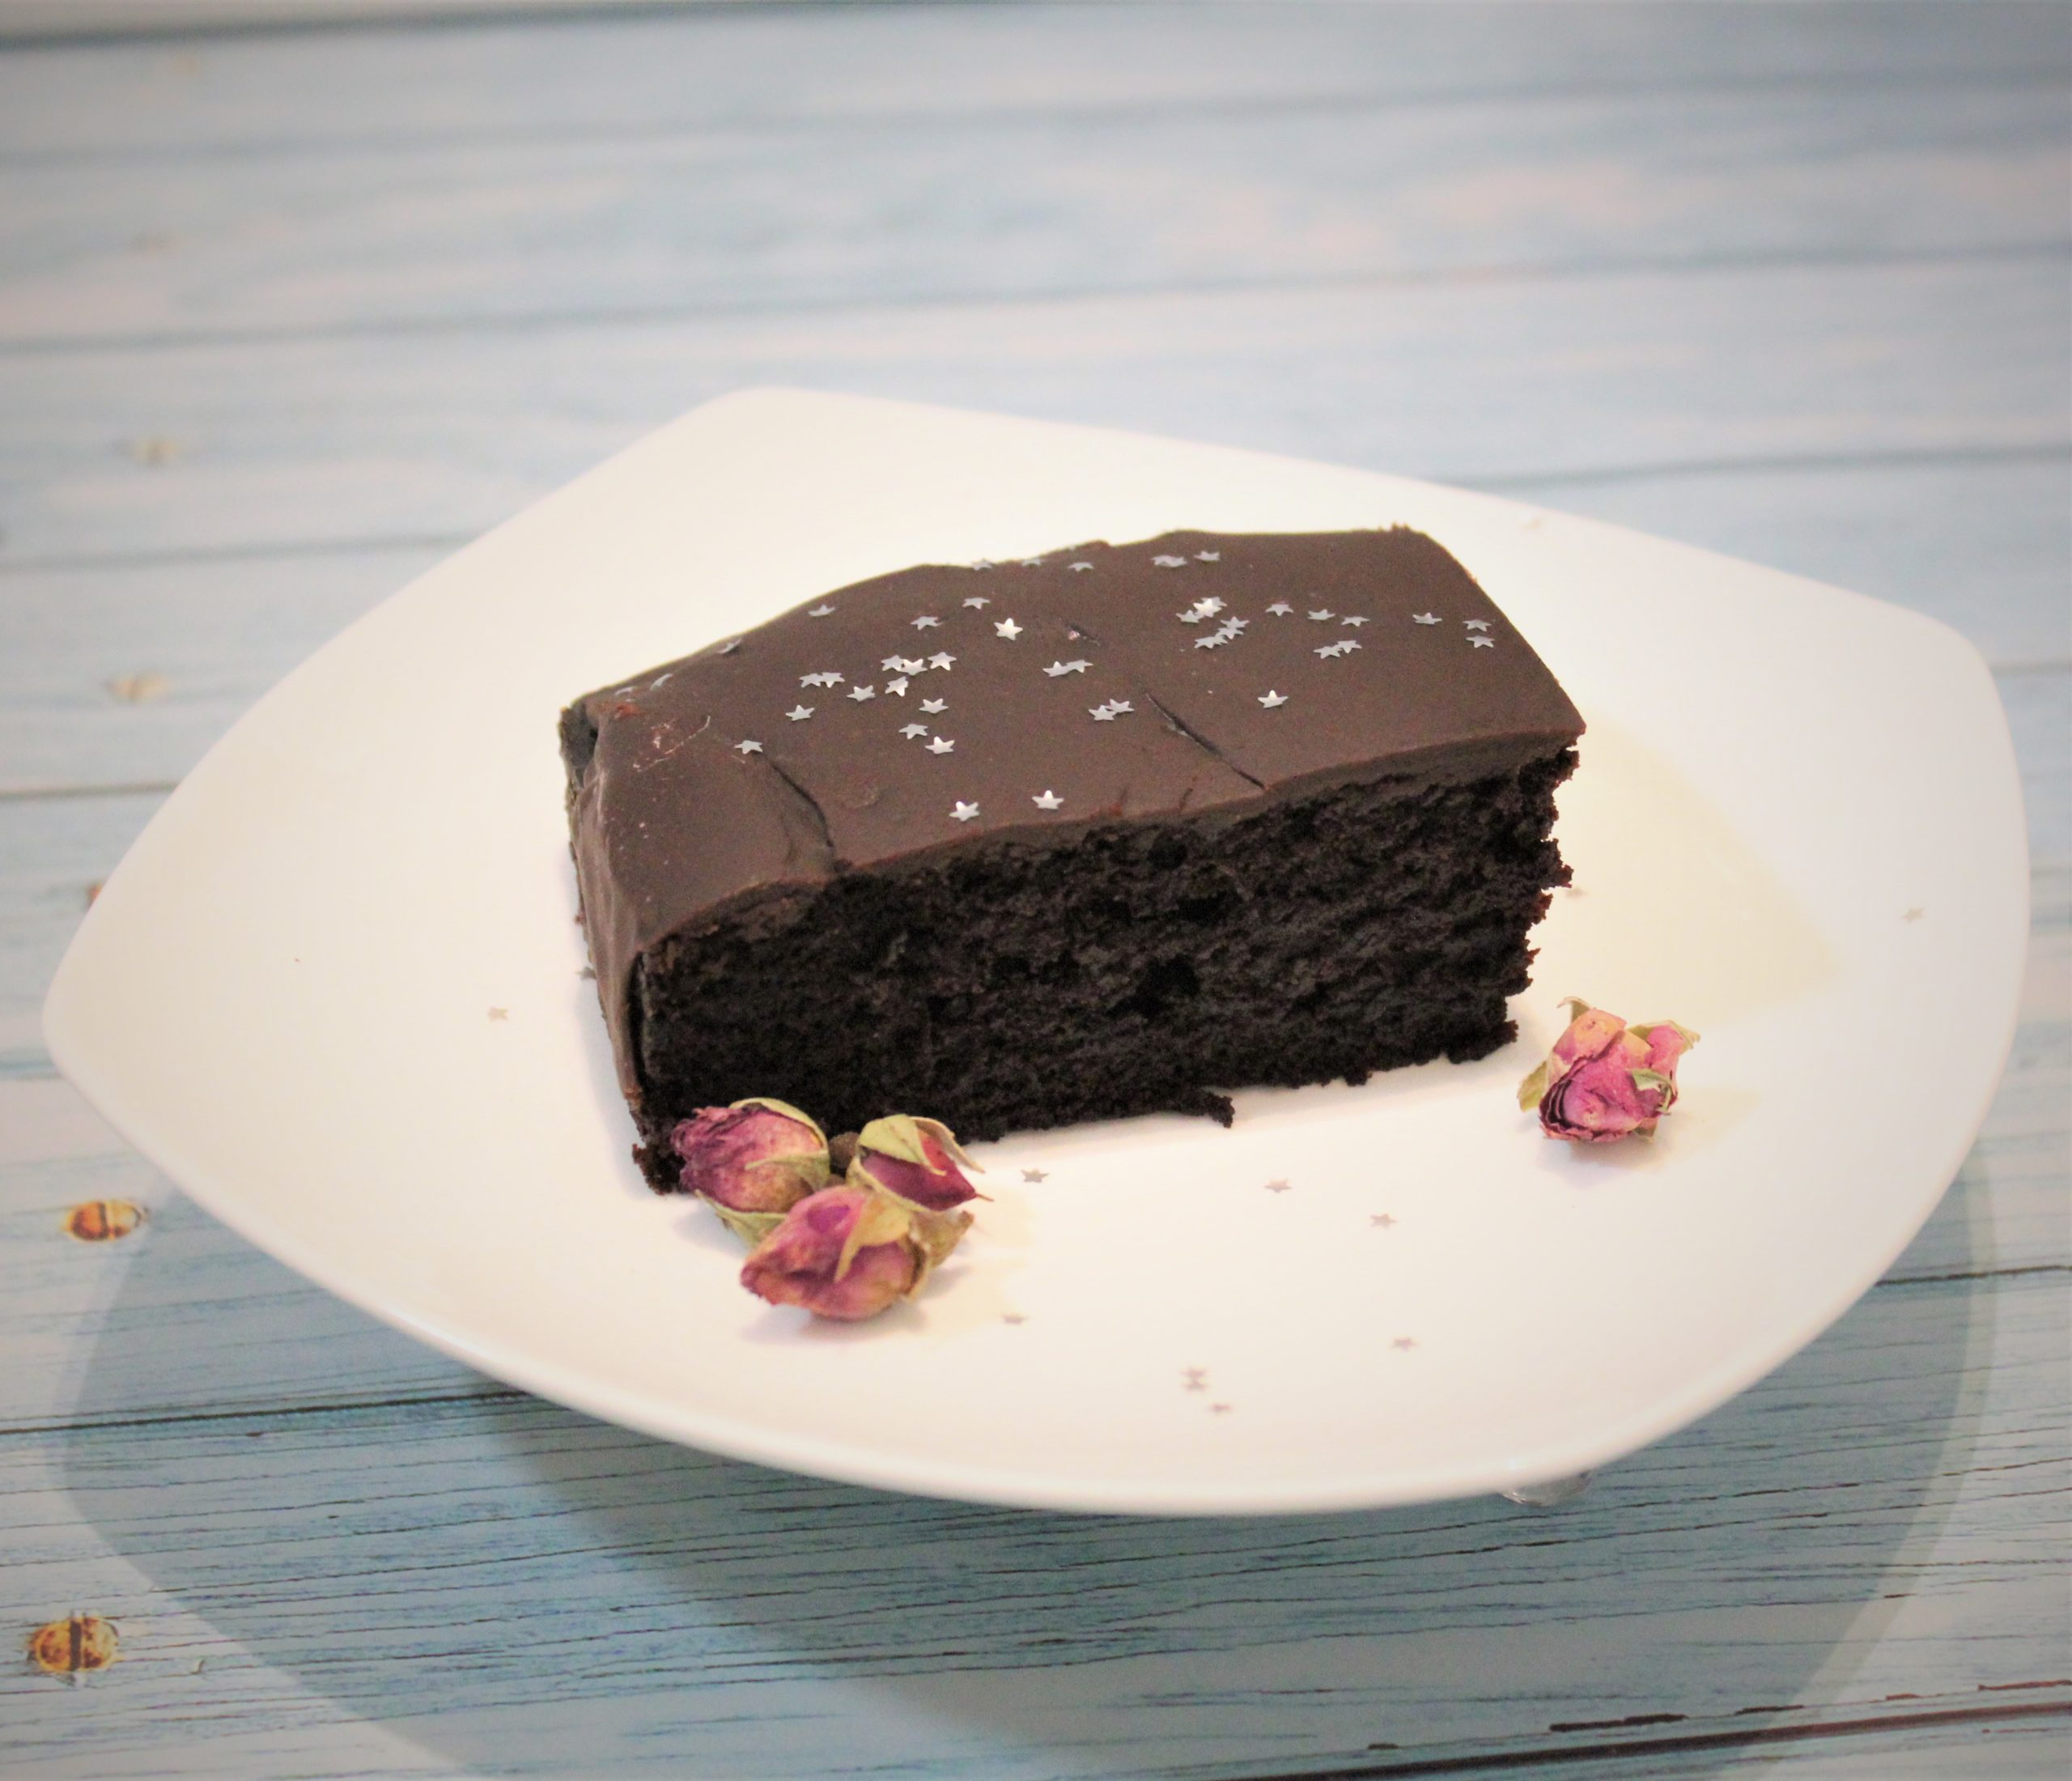 A moist chocolate cake on a plate, decorated with rose buds.